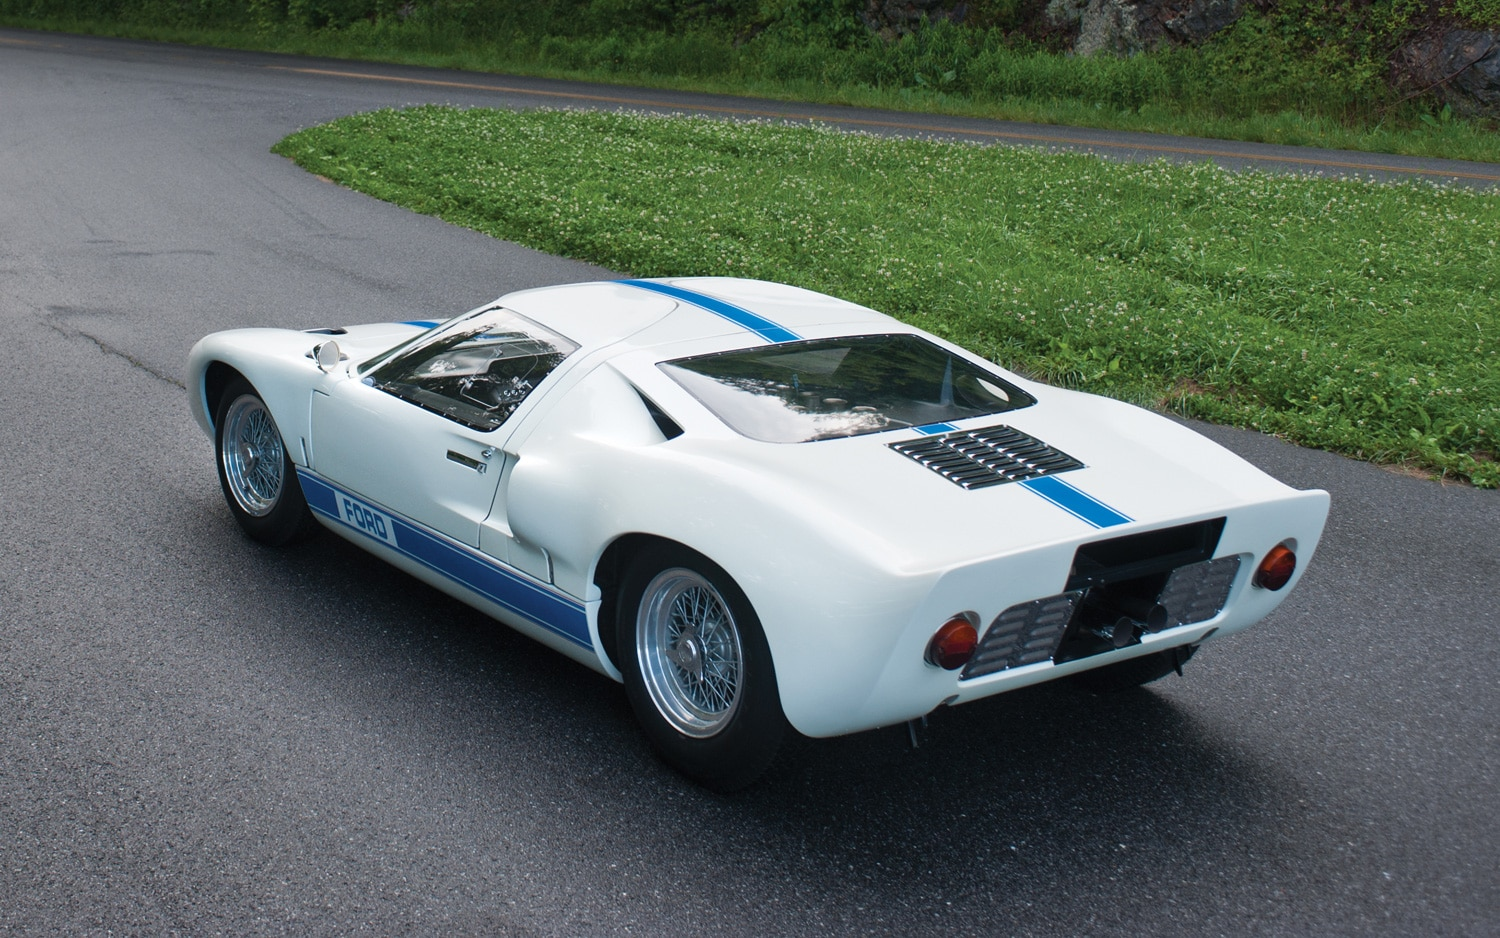 Ford Gt40 Used In Quot Le Mans Quot Sells For 11 Million Sets